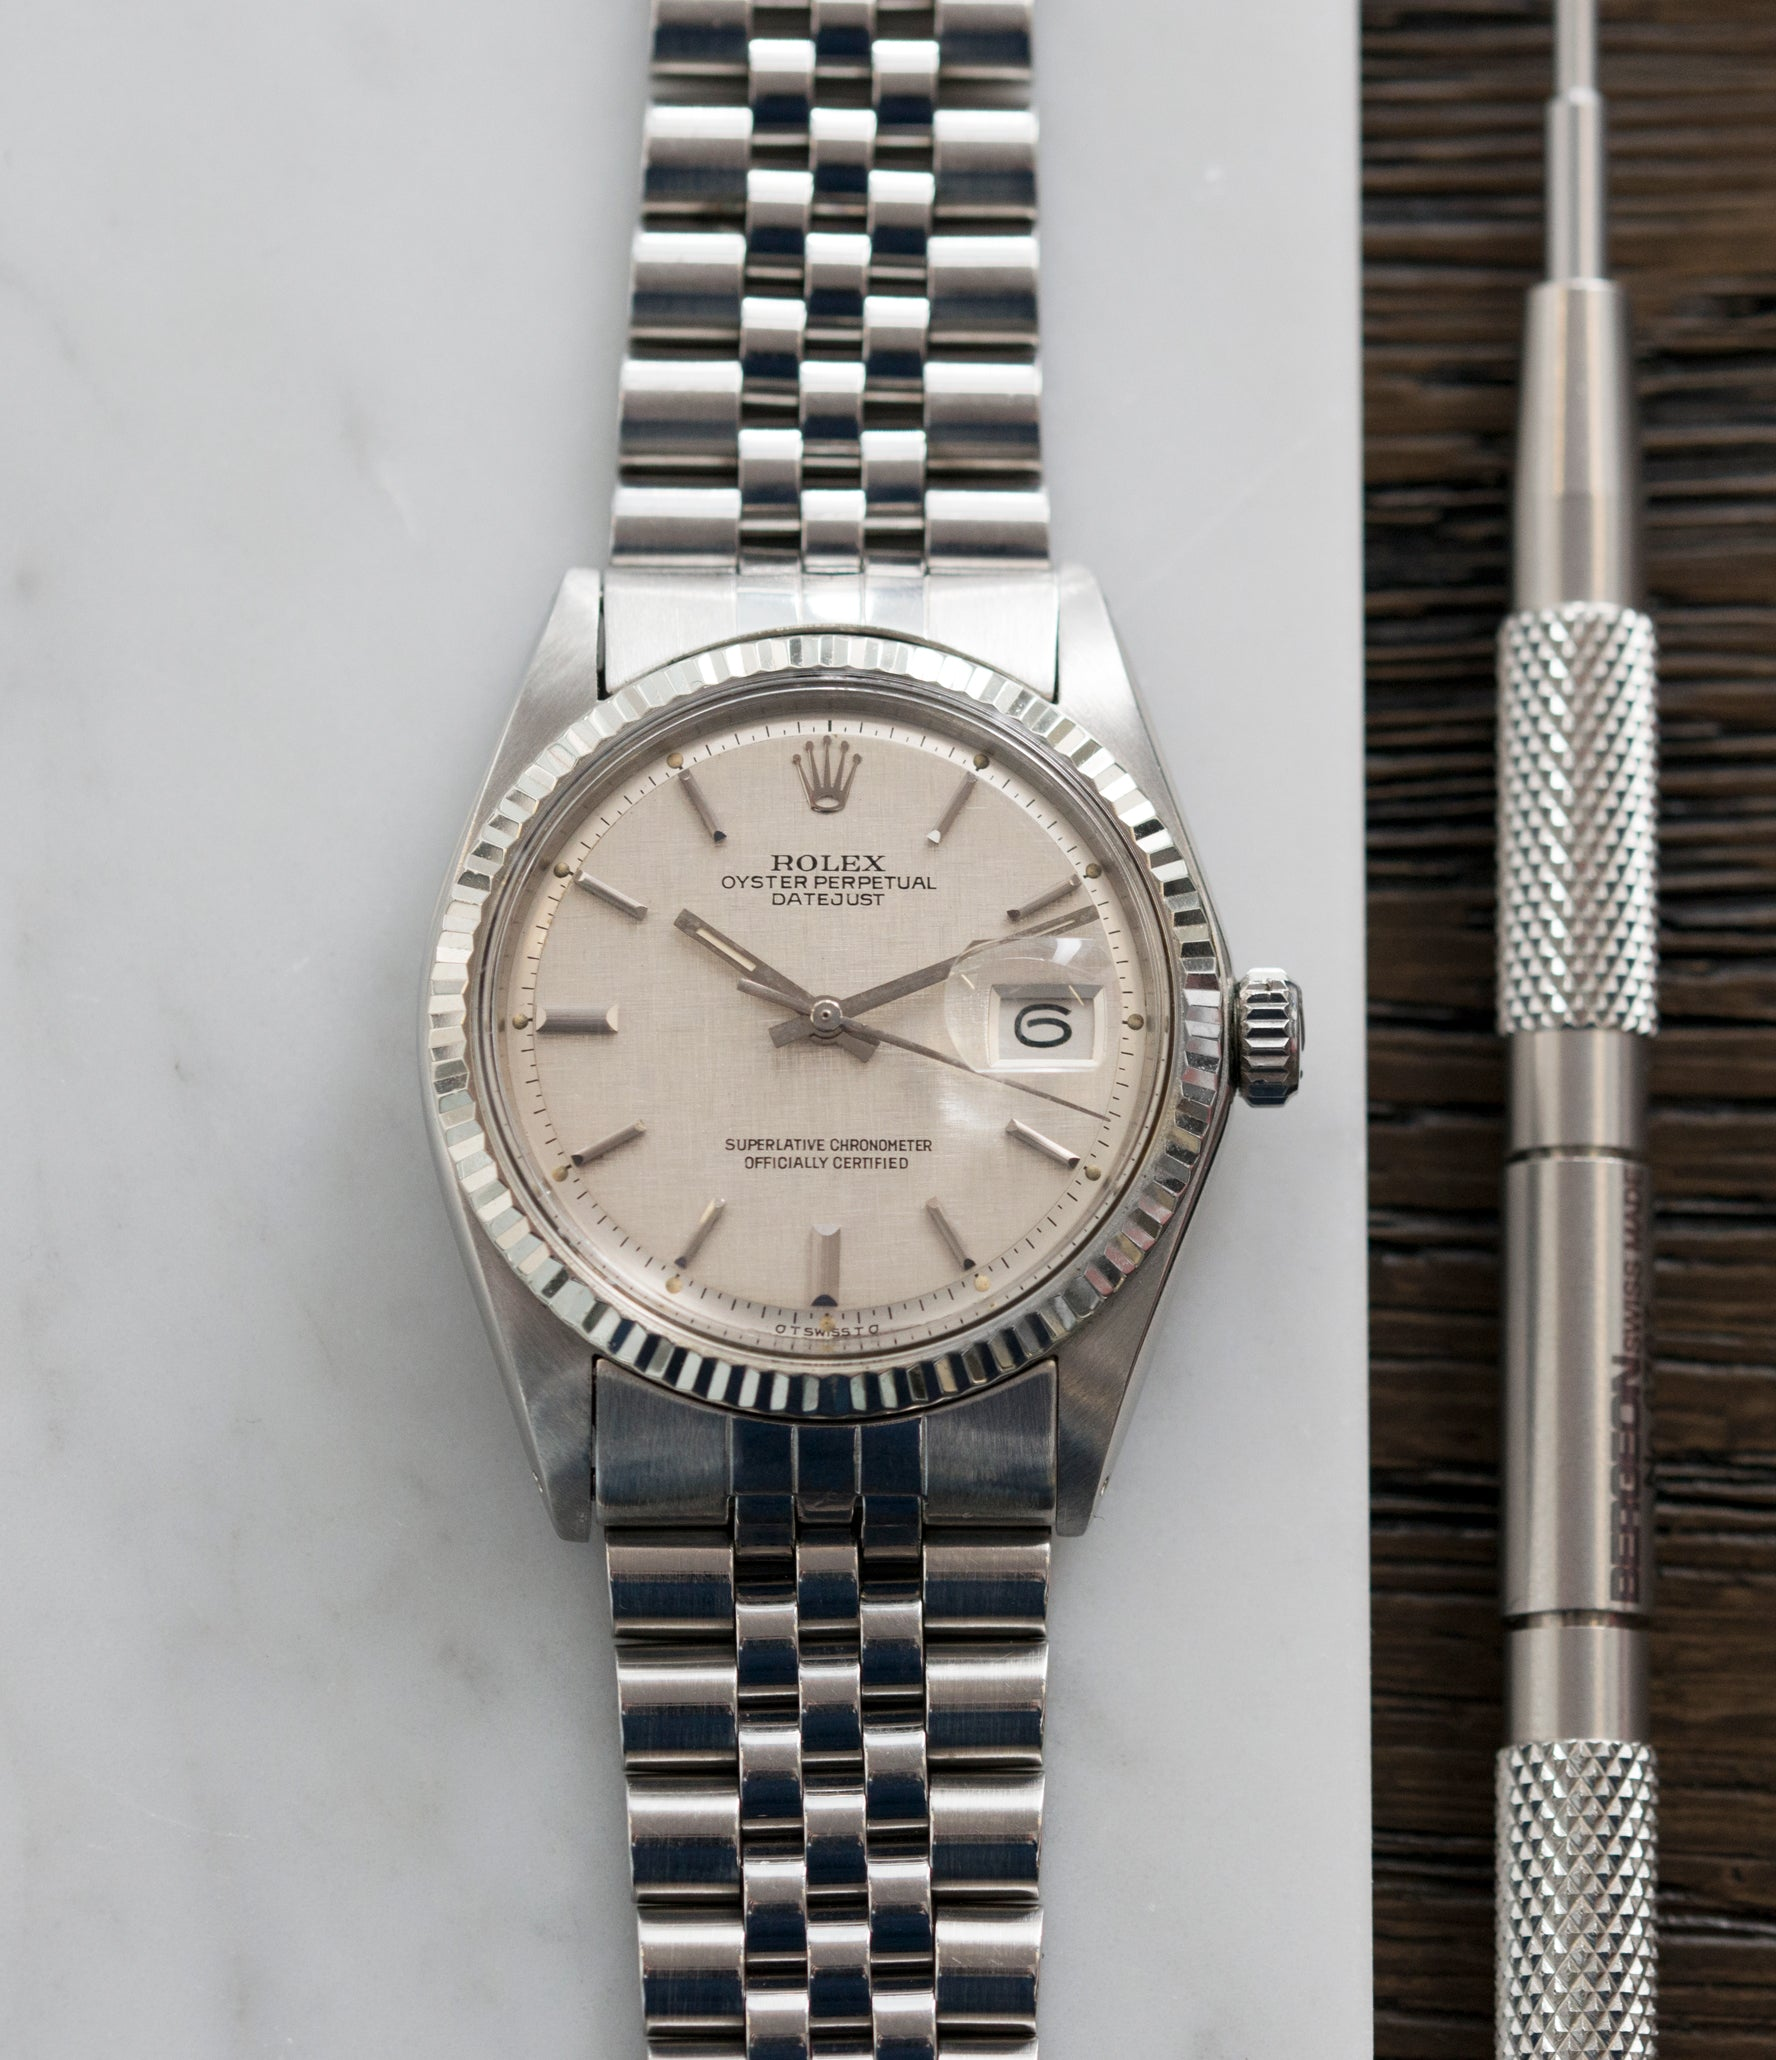 Rolex Oyster Perpetual Datejust 1601 | Sigma Linen | steel